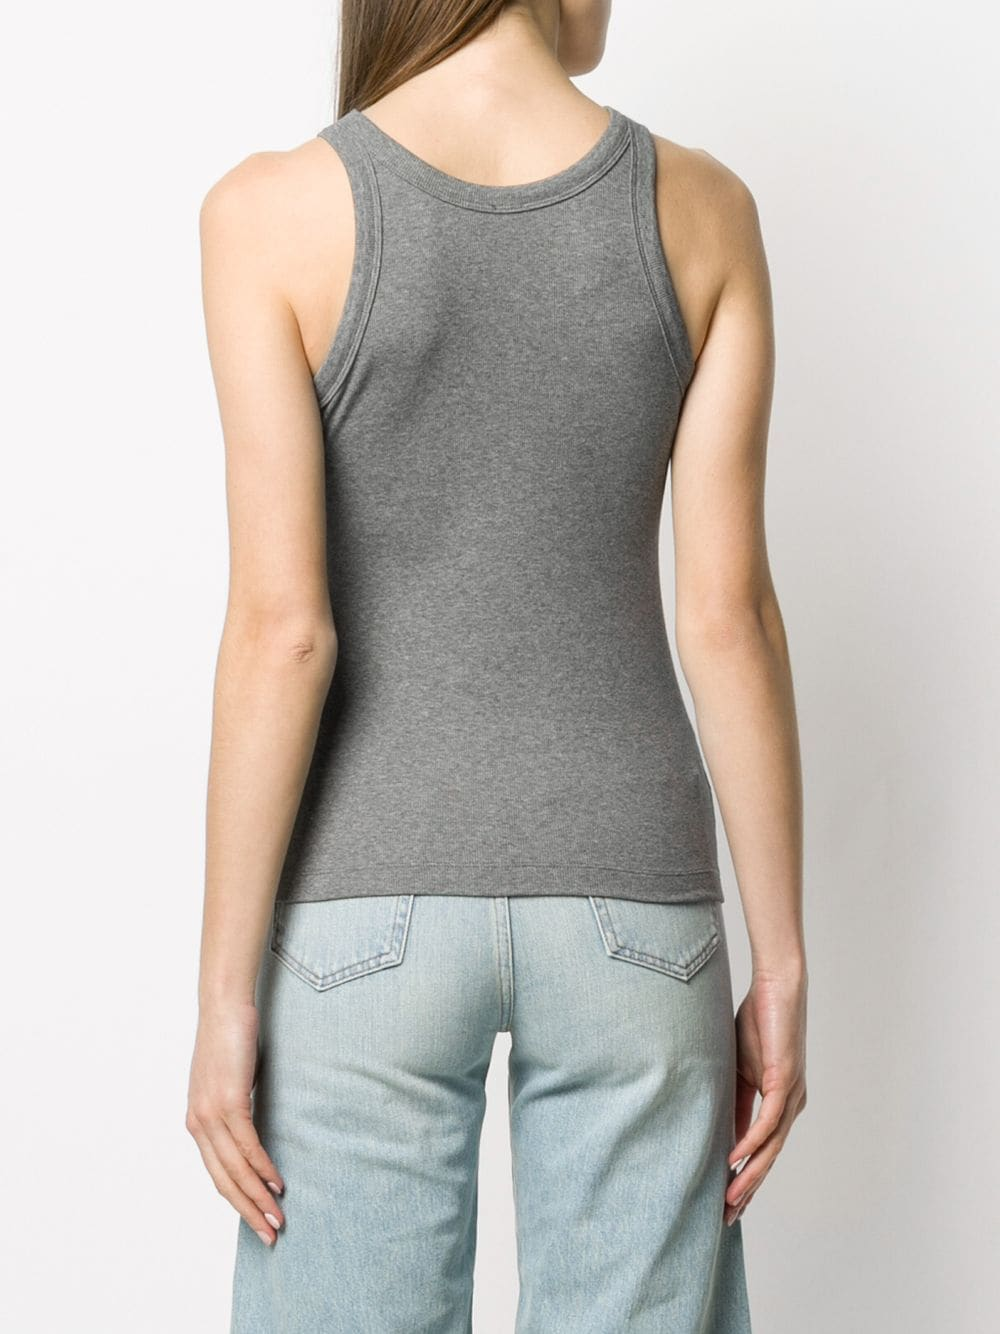 RIBBED TIGHT FITTED TANK TOP